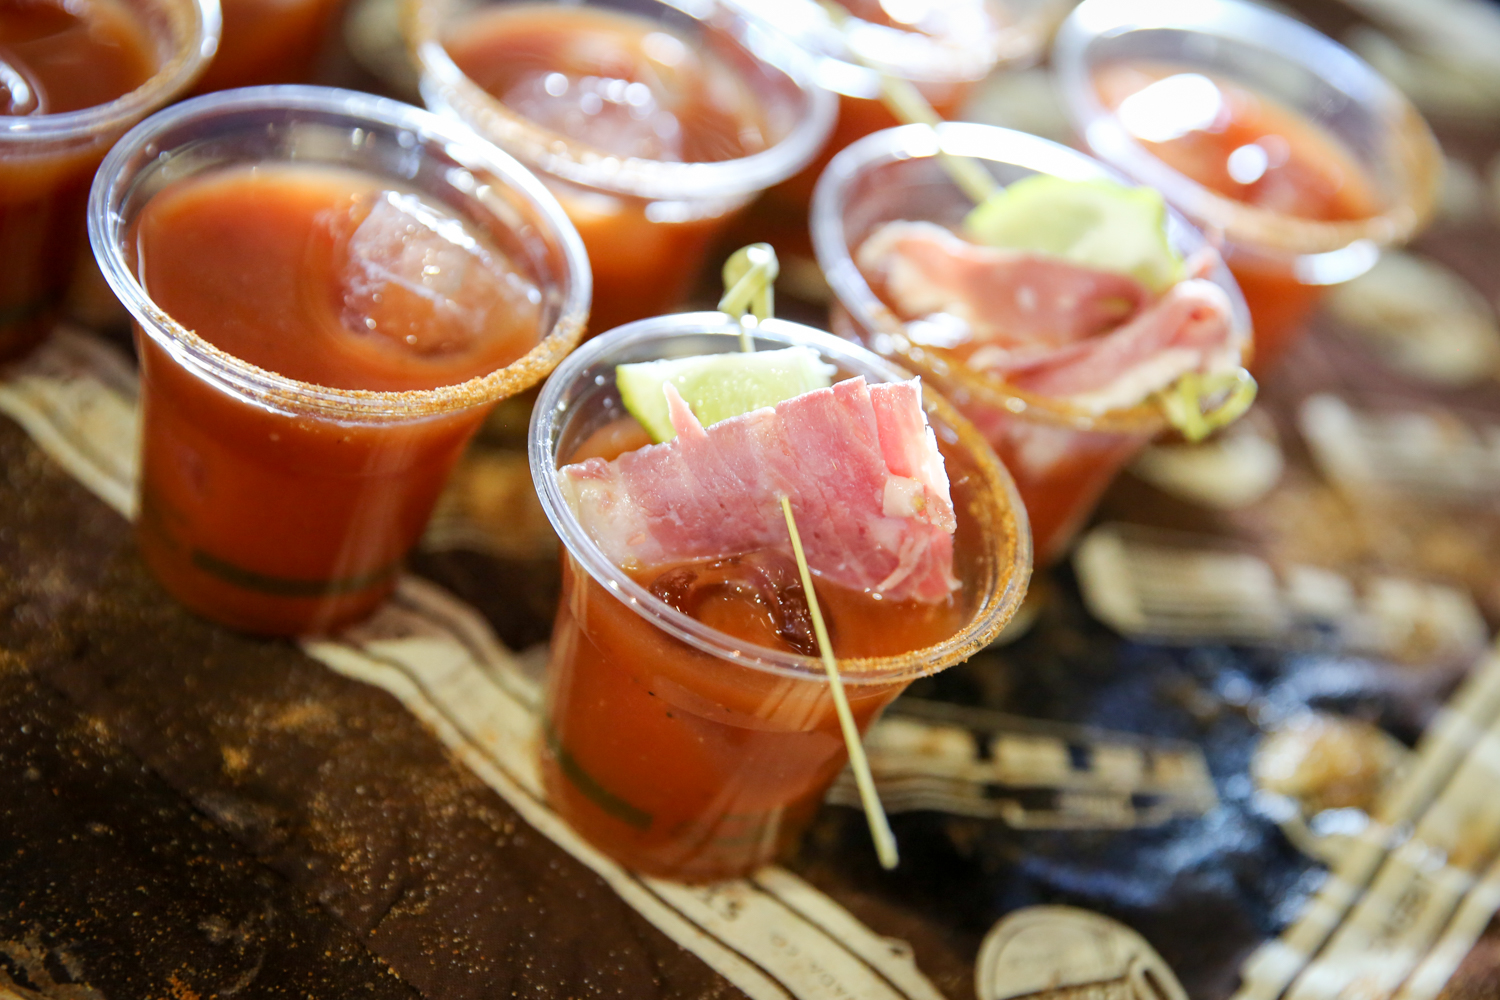 Steuben's Bloody Mary